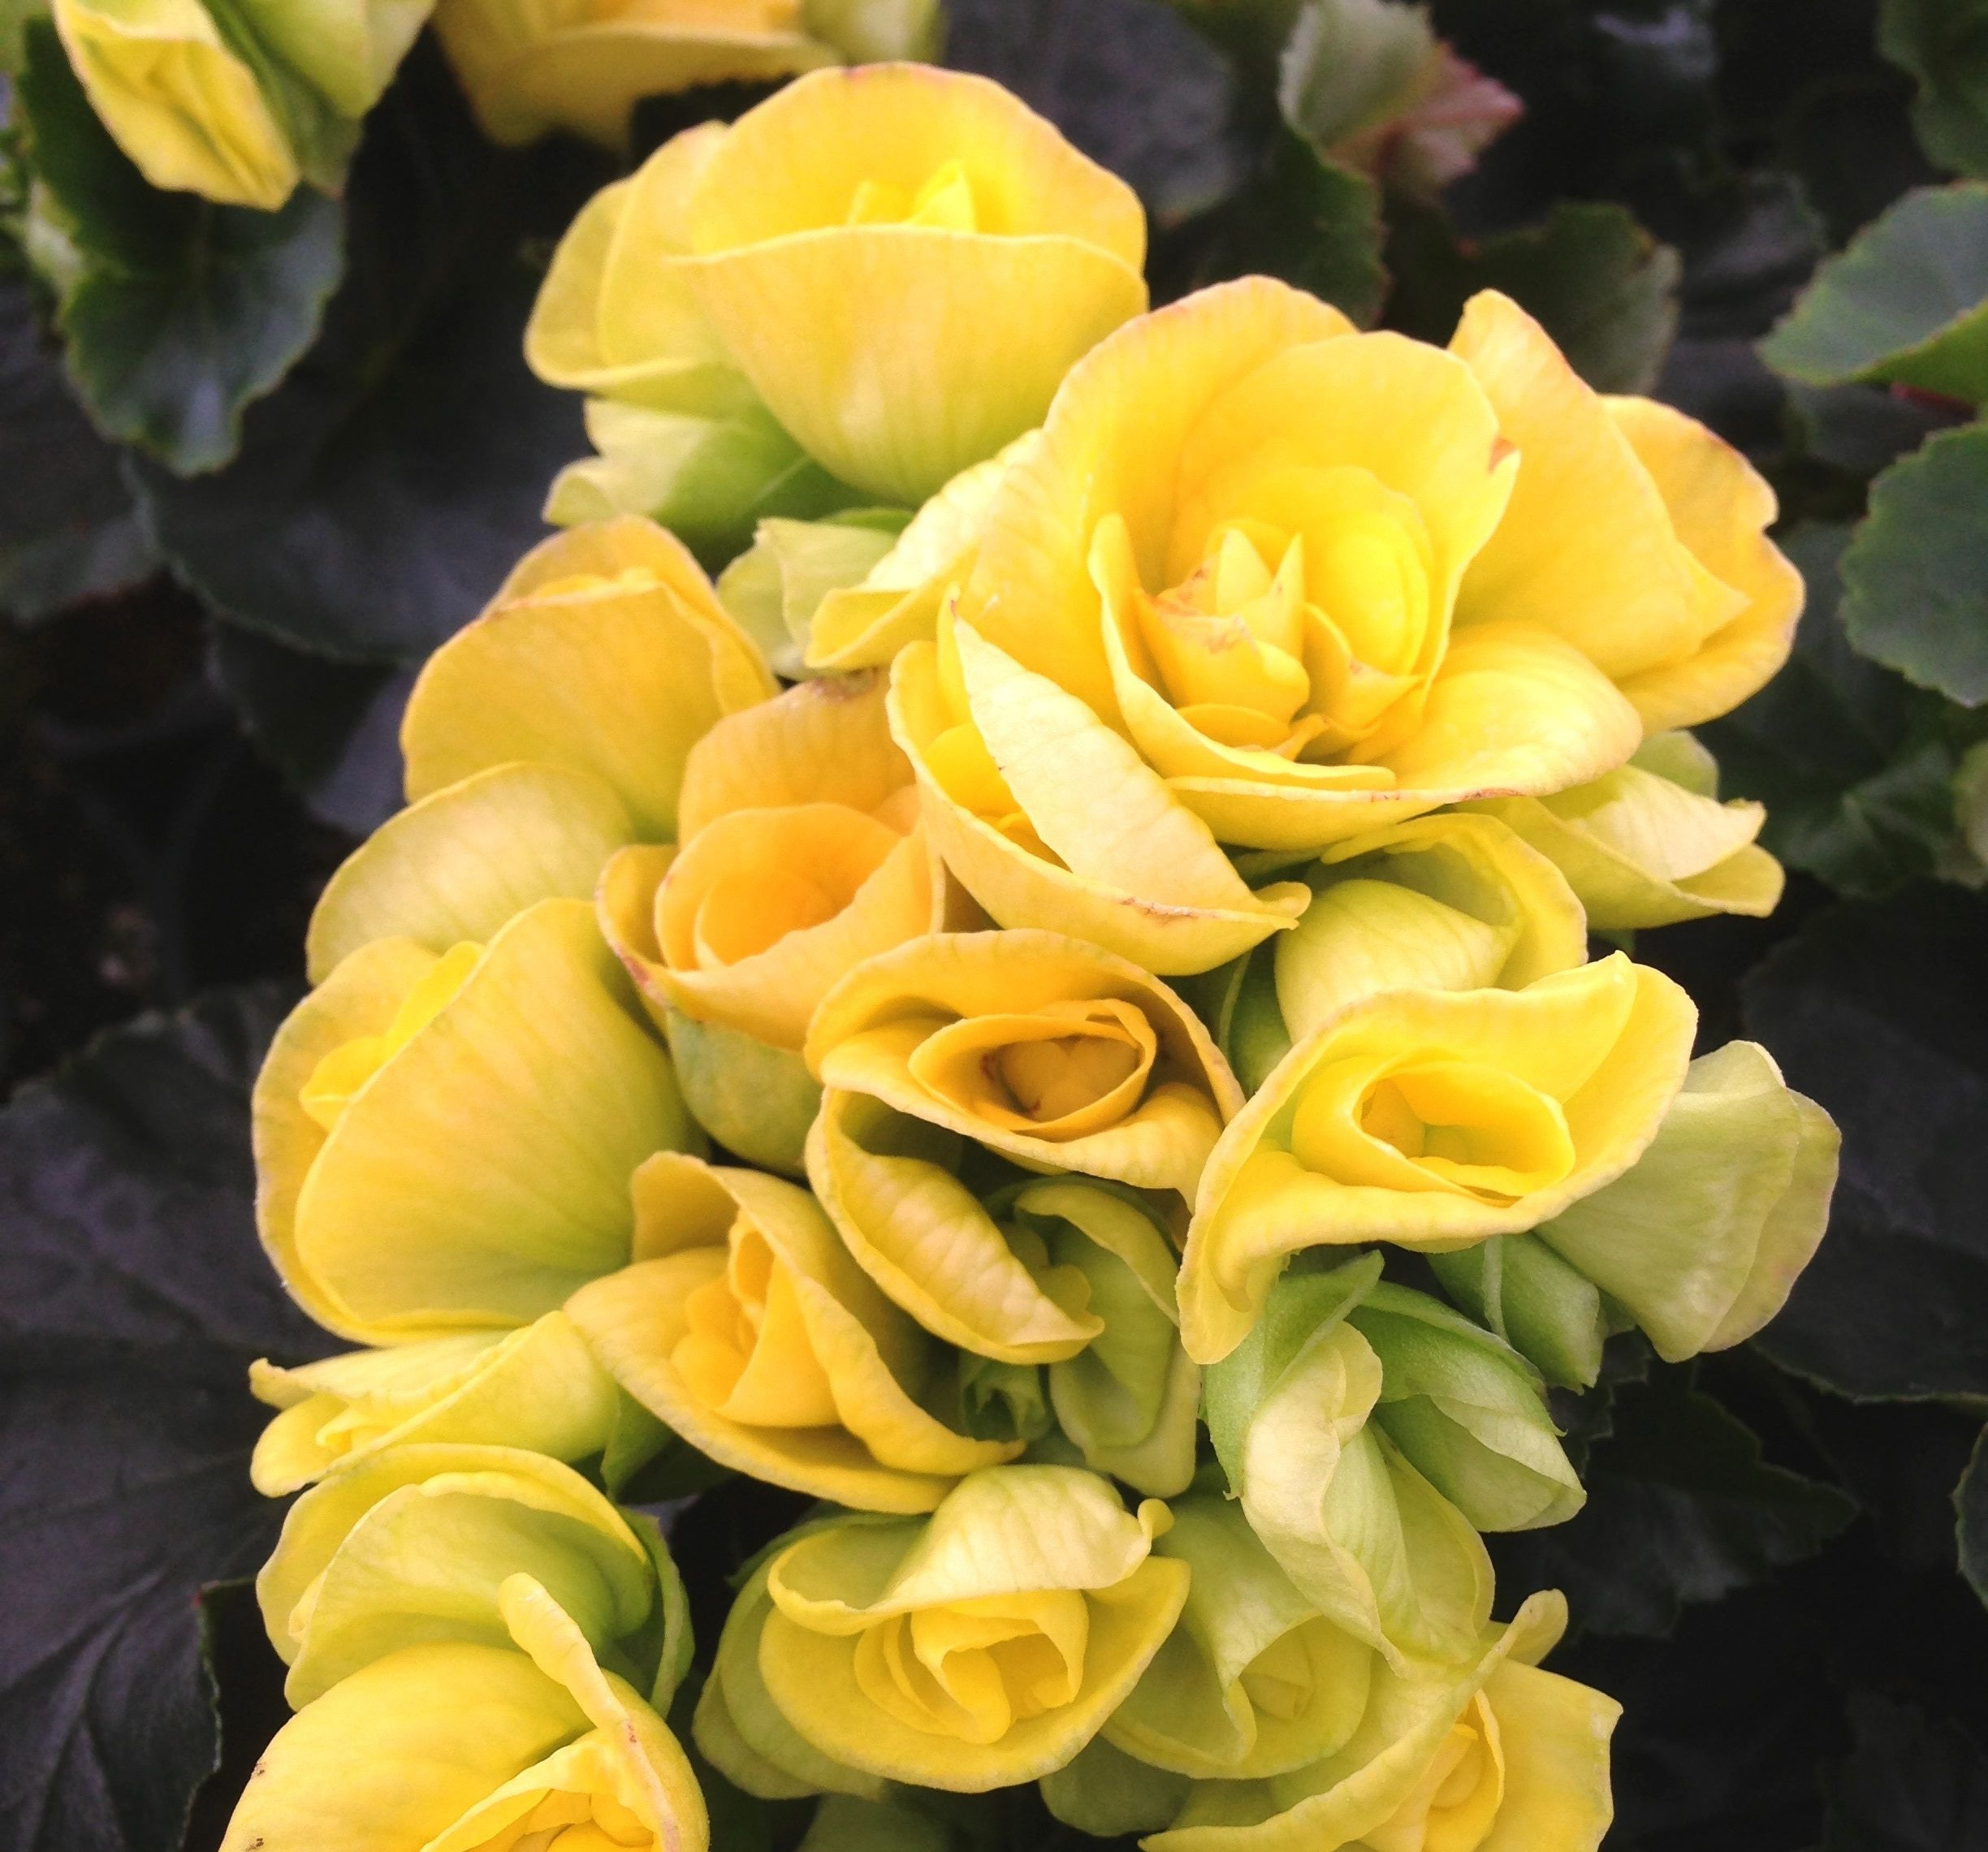 Begonia Elatior Blitz Is Loaded With Bright Yellow Flowers Begoniablitz Begonia Annual Plants Yellow Flowers Begonia